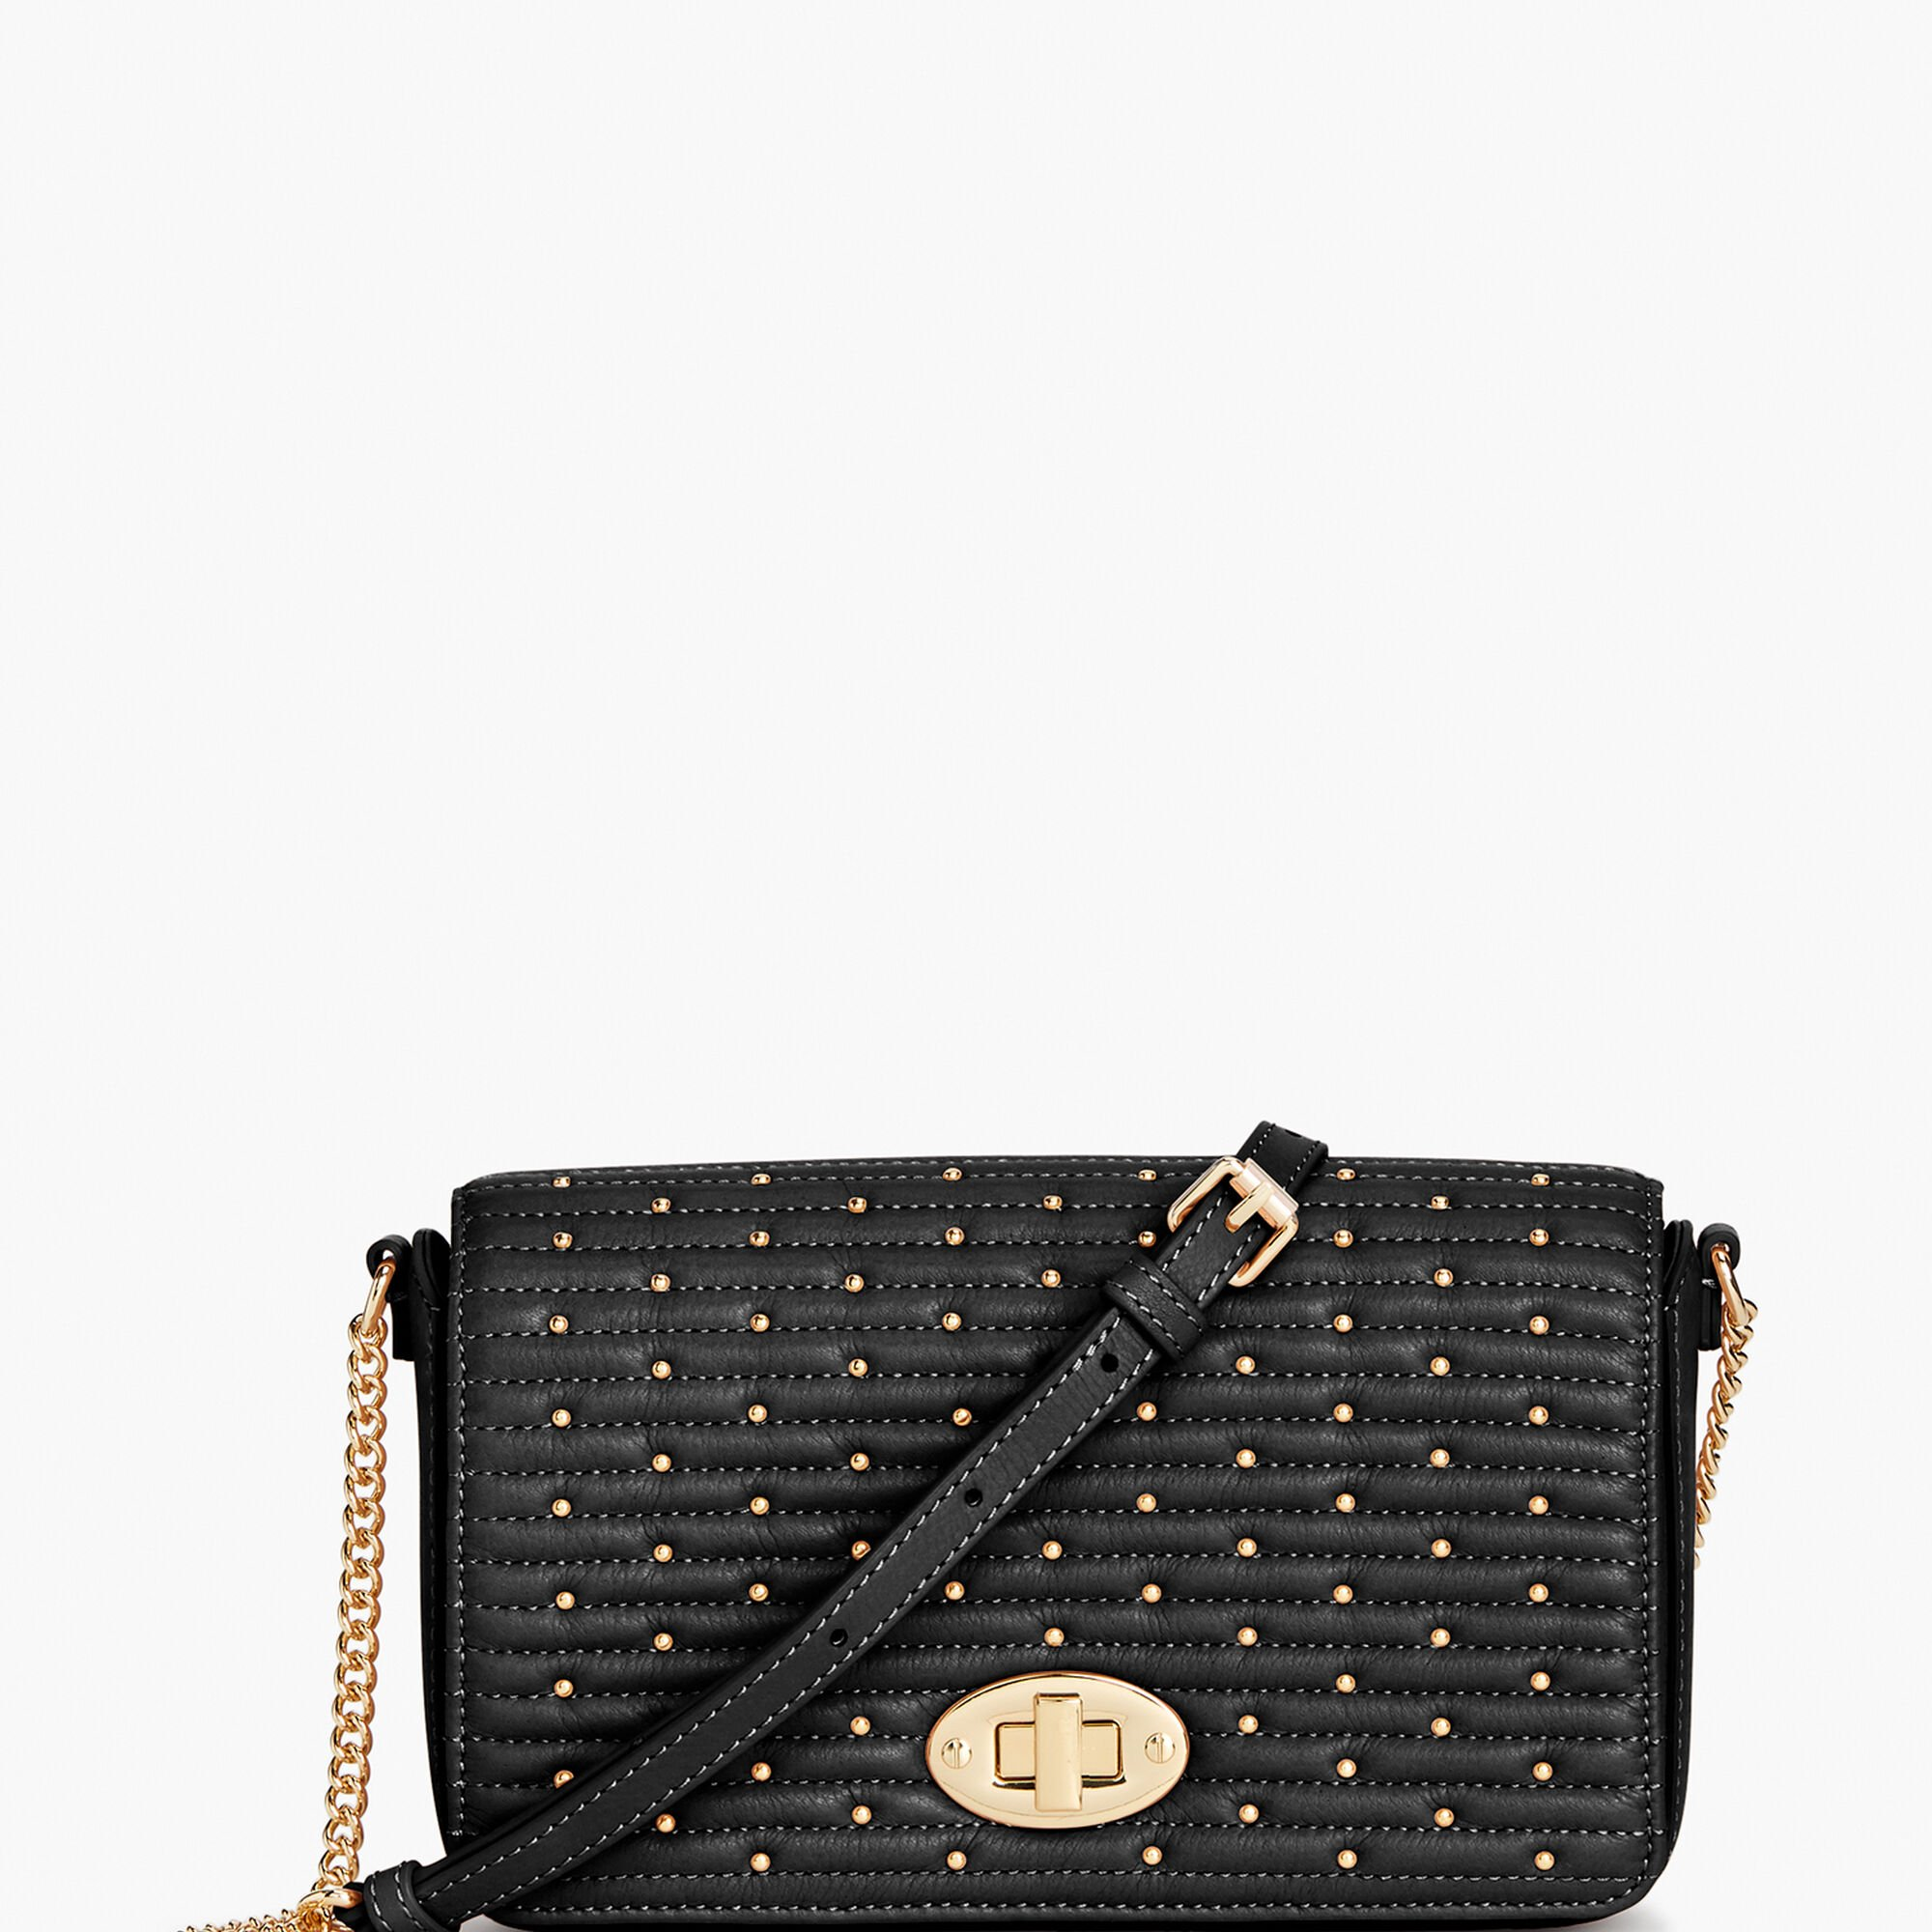 96b5187d361a Quilted Studded Leather Crossbody Bag Opens a New Window.